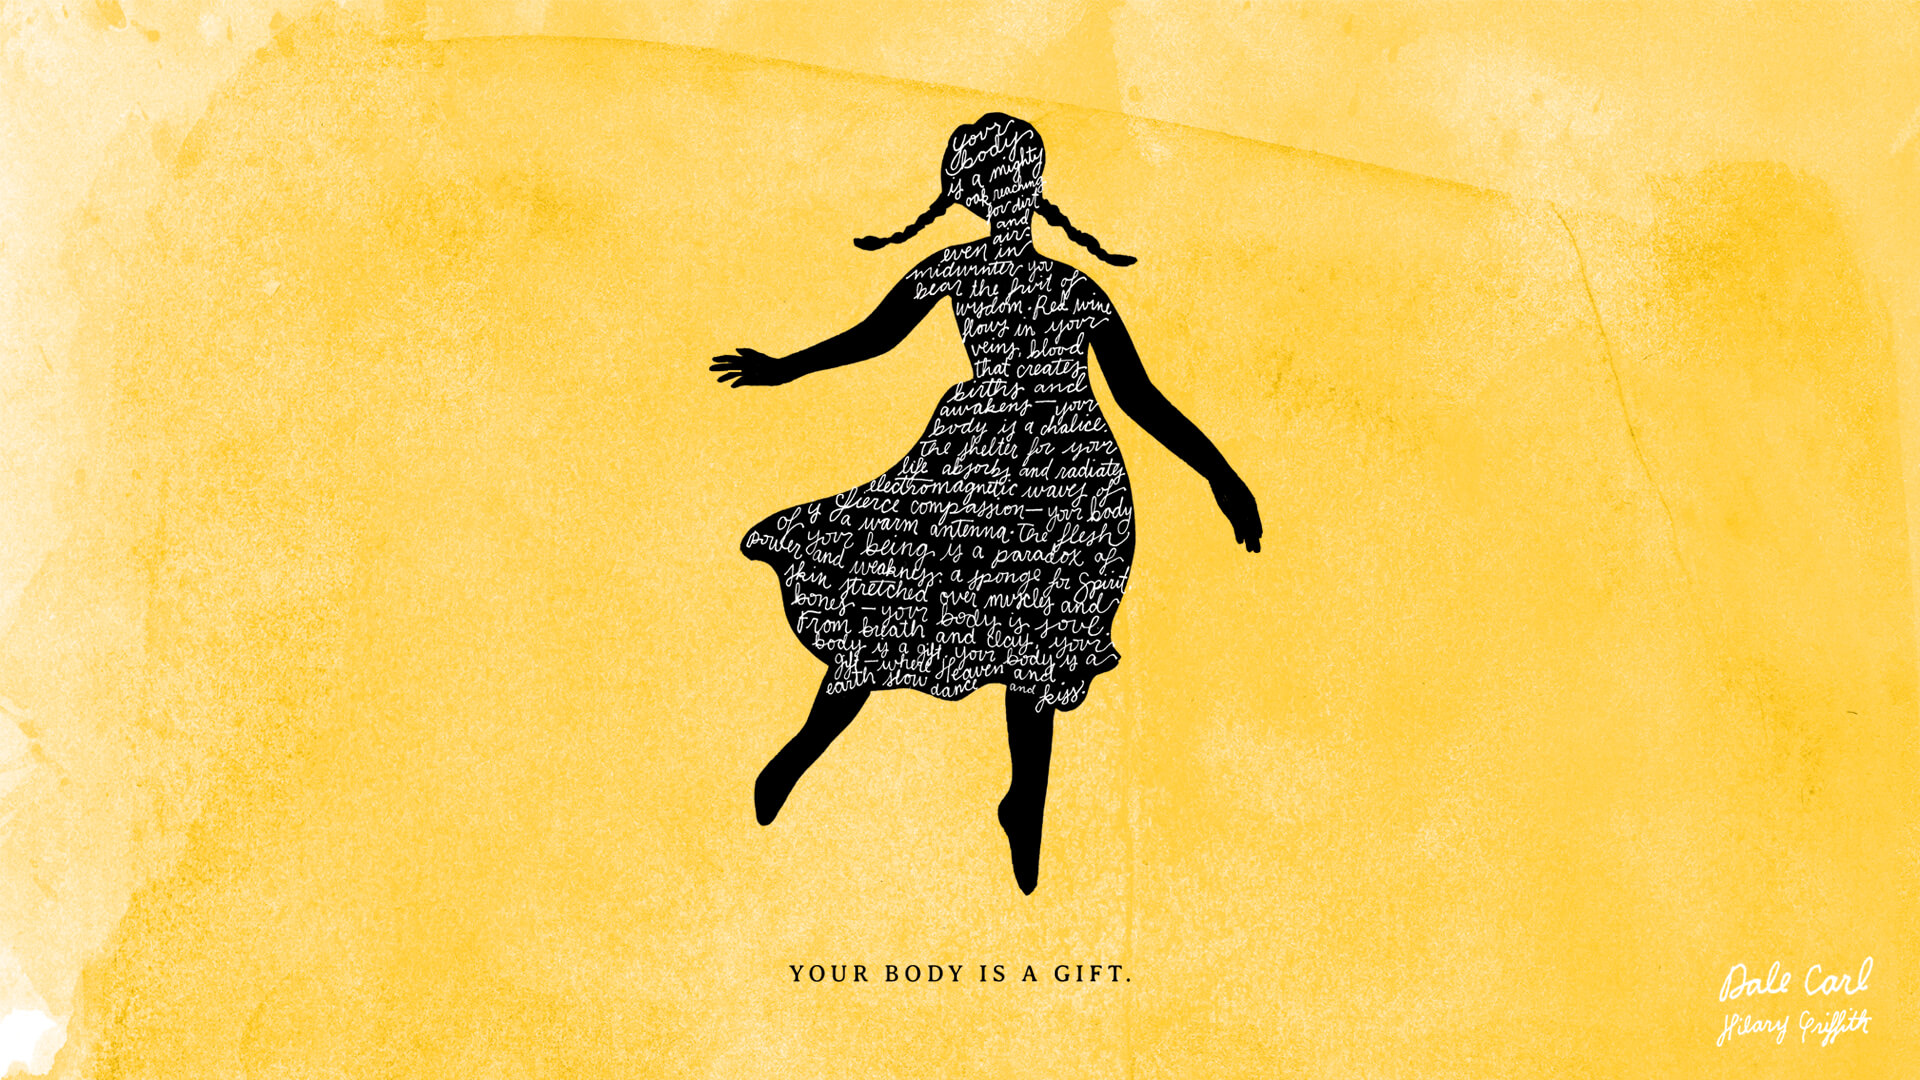 your body is a gift